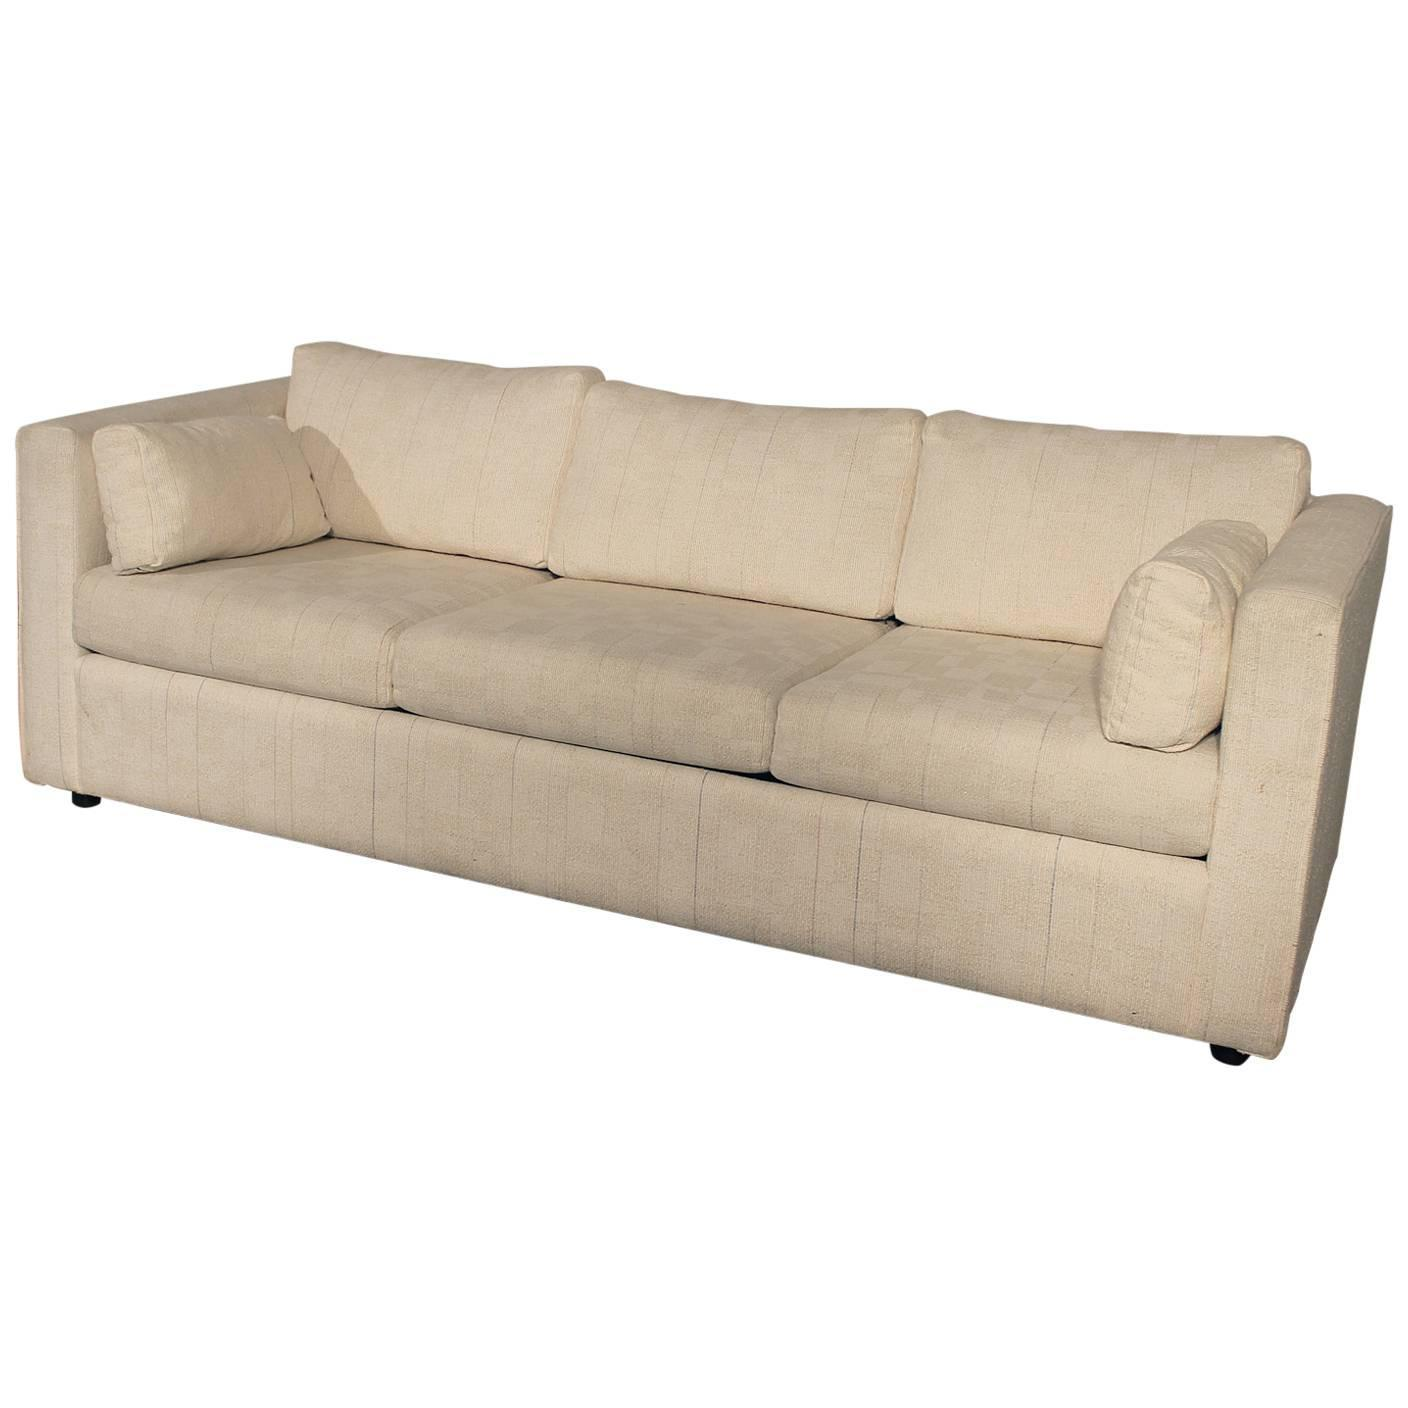 Mid Century Modern White Tuxedo Style Sleeper Sofa At 1stdibs